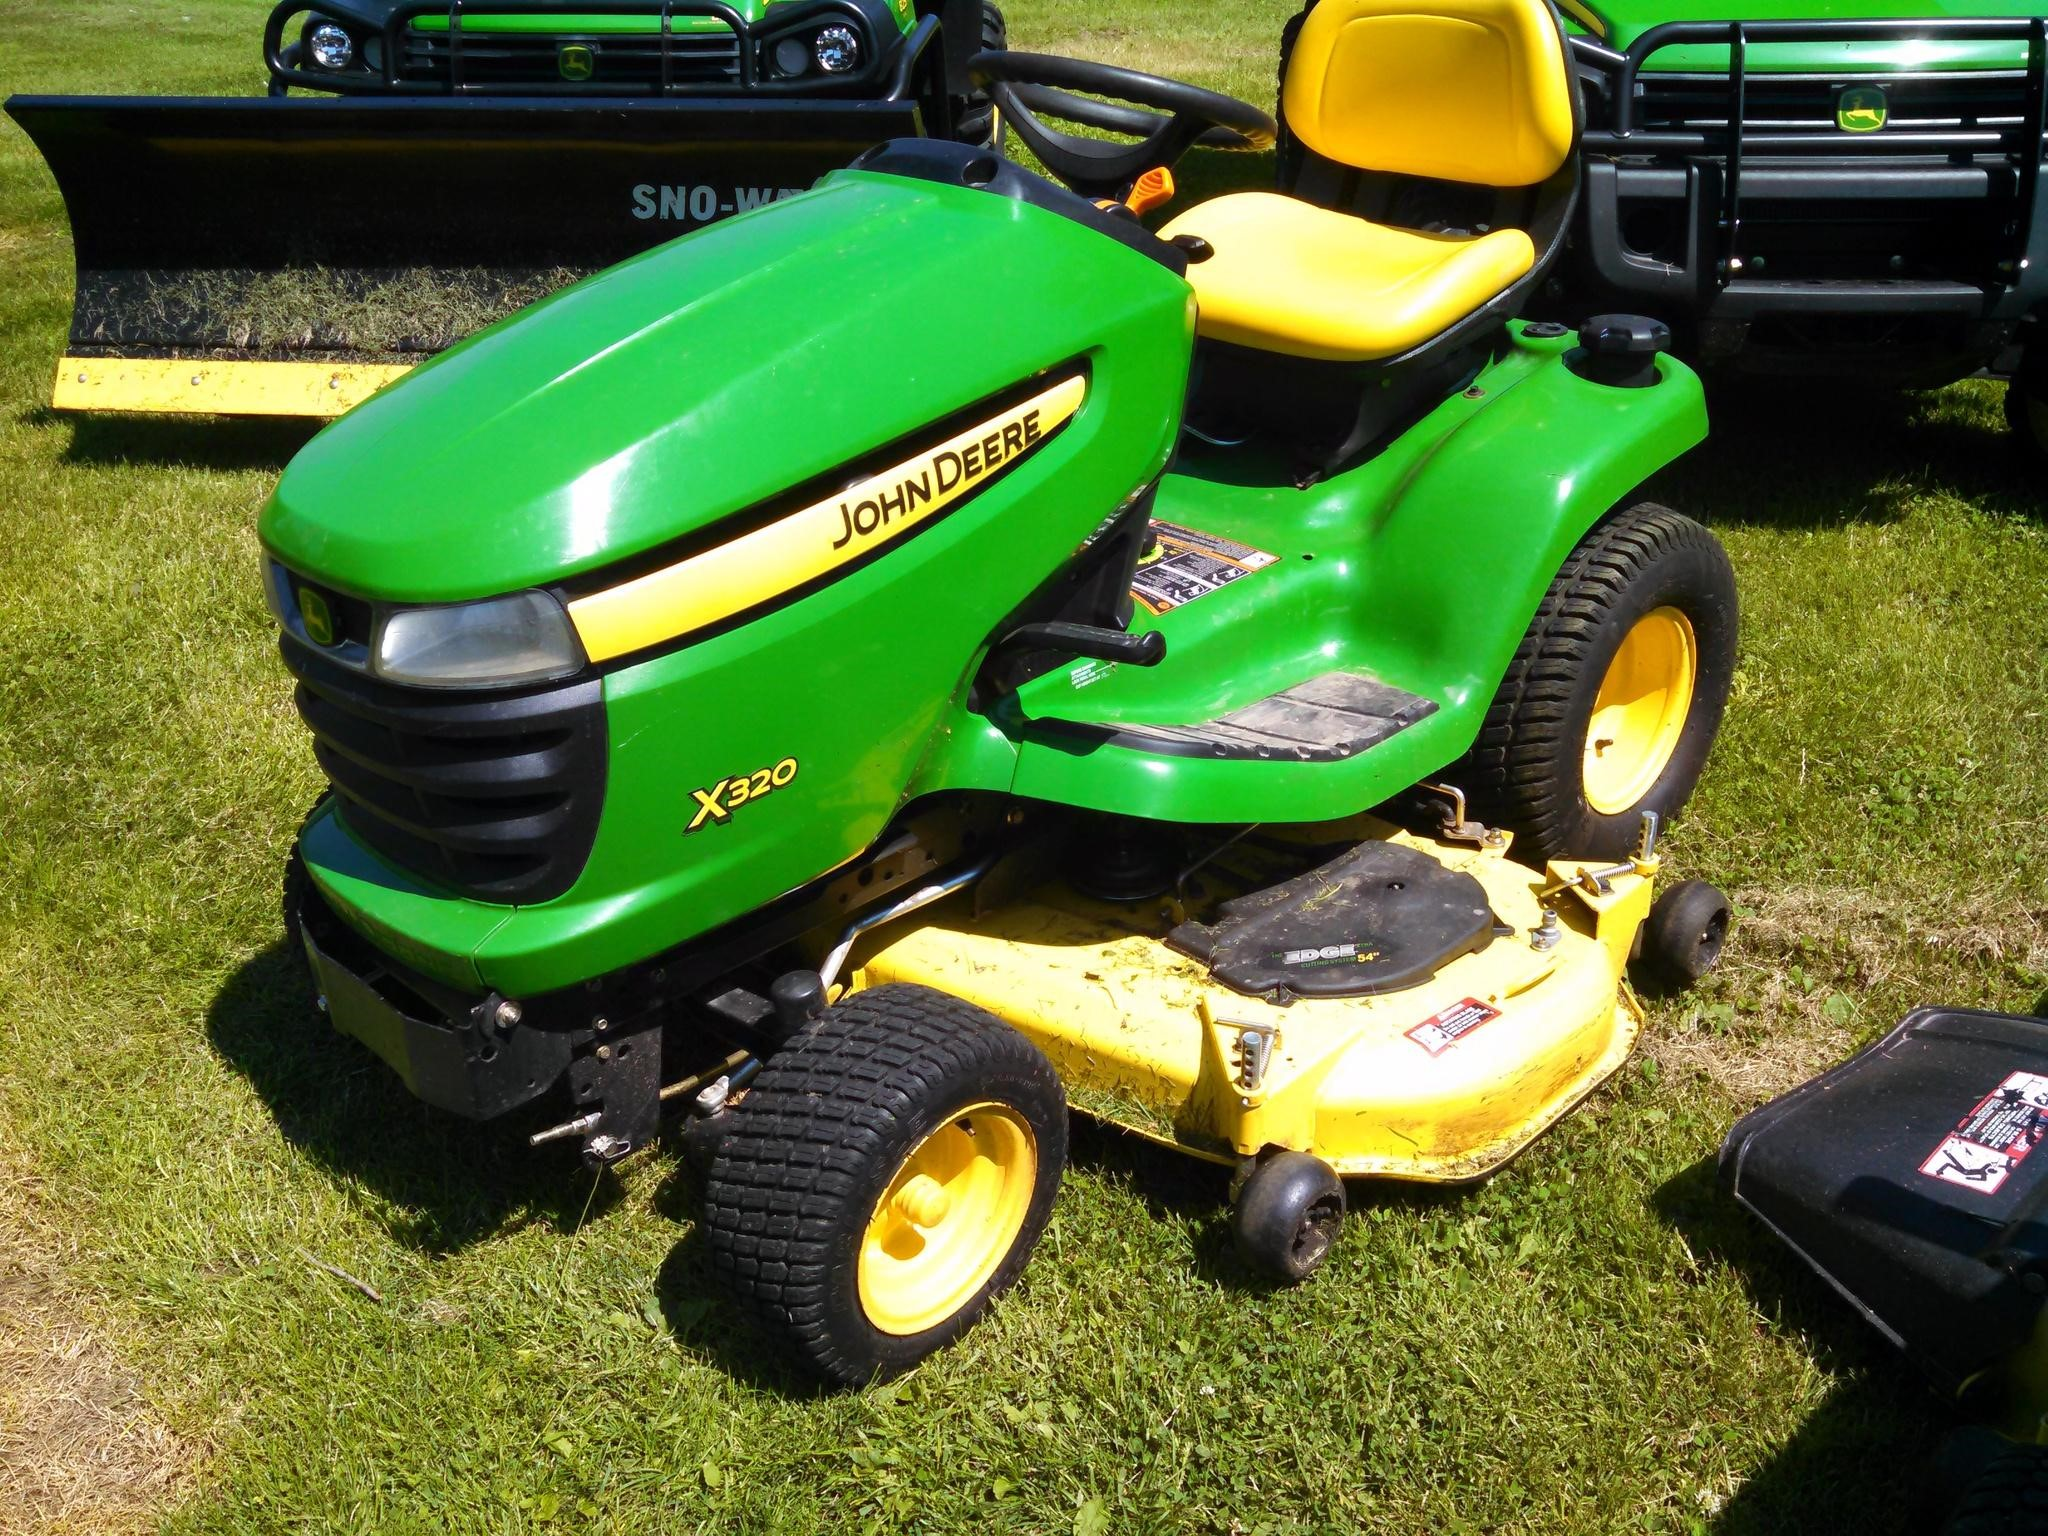 wisconsin ag connection john deere x320 riding lawn mowers for sale. Black Bedroom Furniture Sets. Home Design Ideas